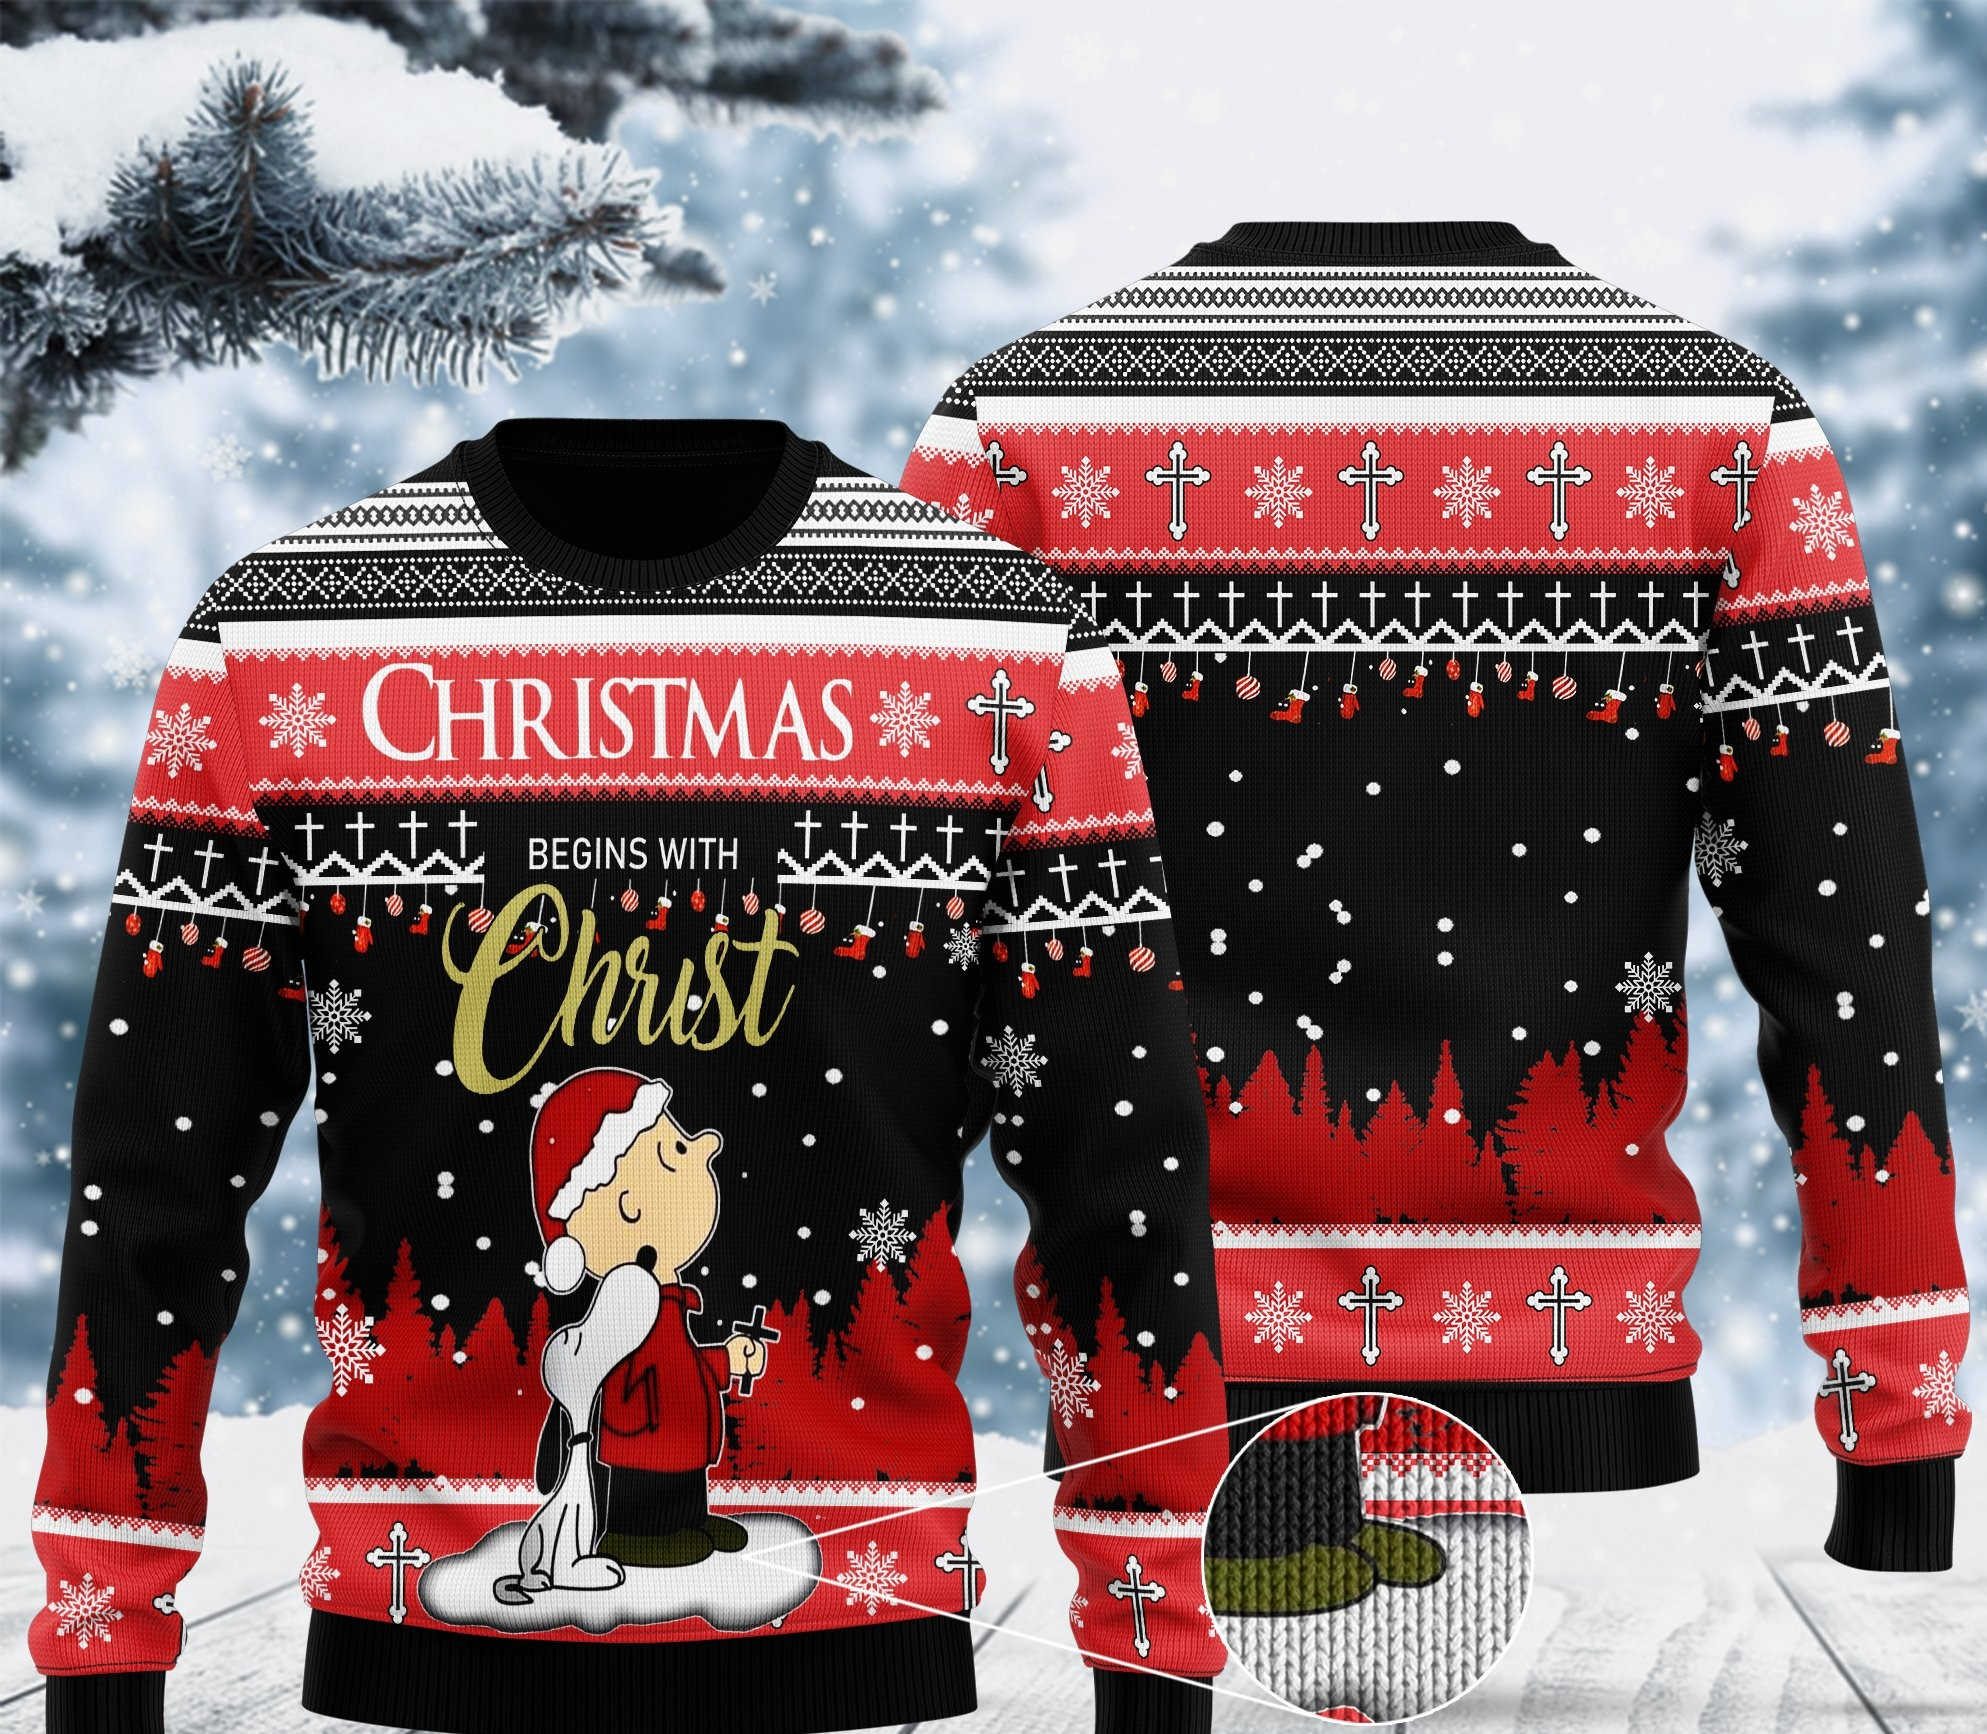 christmas begins with christ charlie brown and snoopy all over printed ugly christmas sweater 2 - Copy